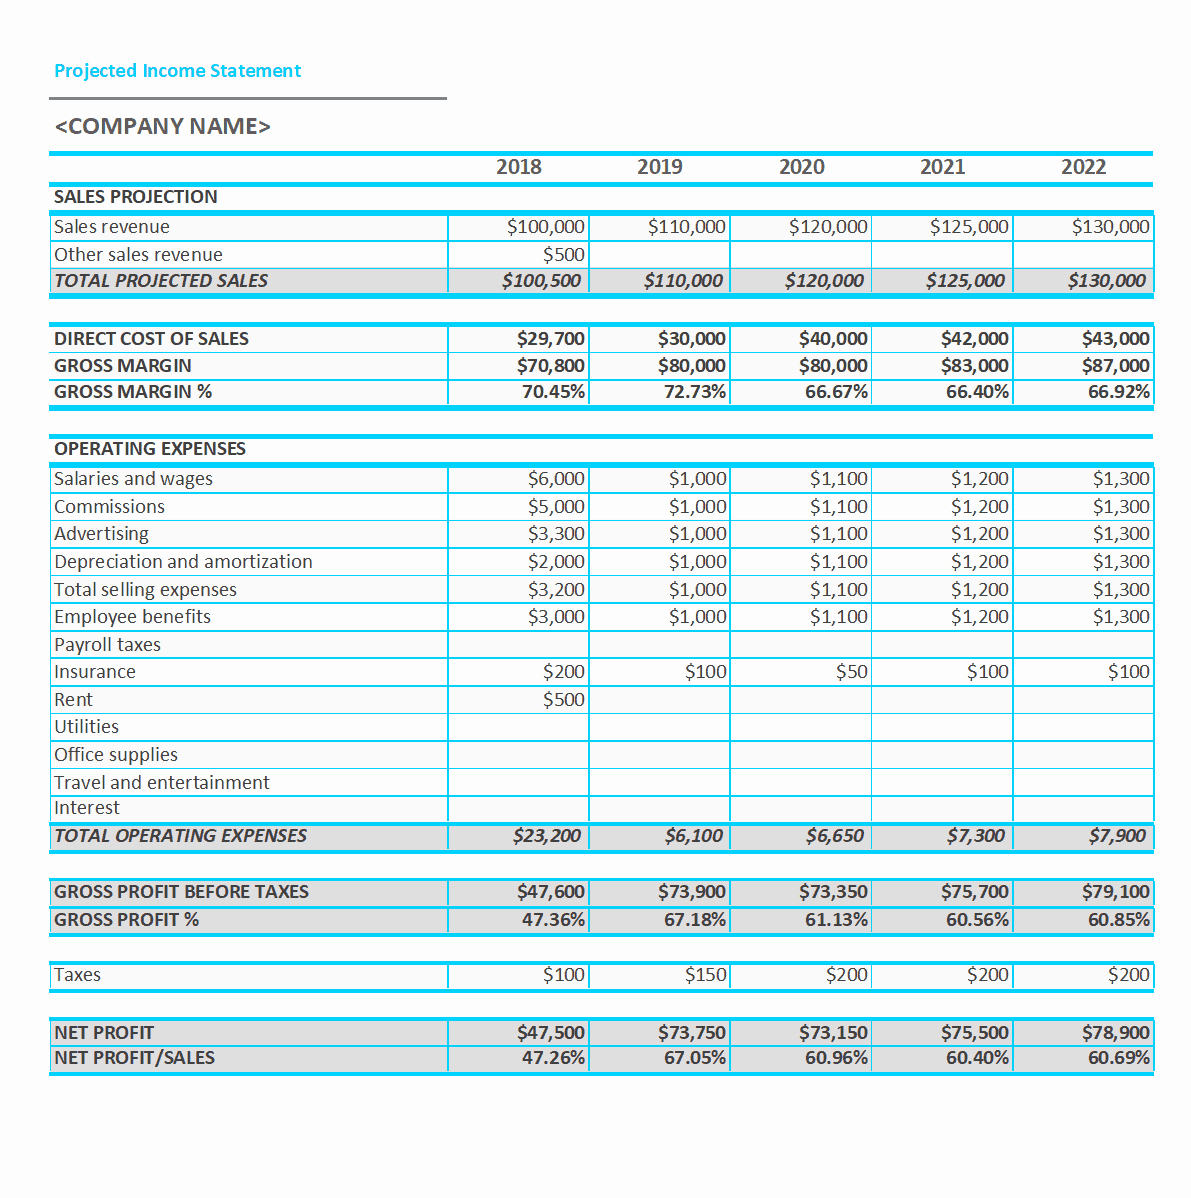 Projected Income Statement Template Lovely 41 Free In E Statement Templates & Examples Template Lab